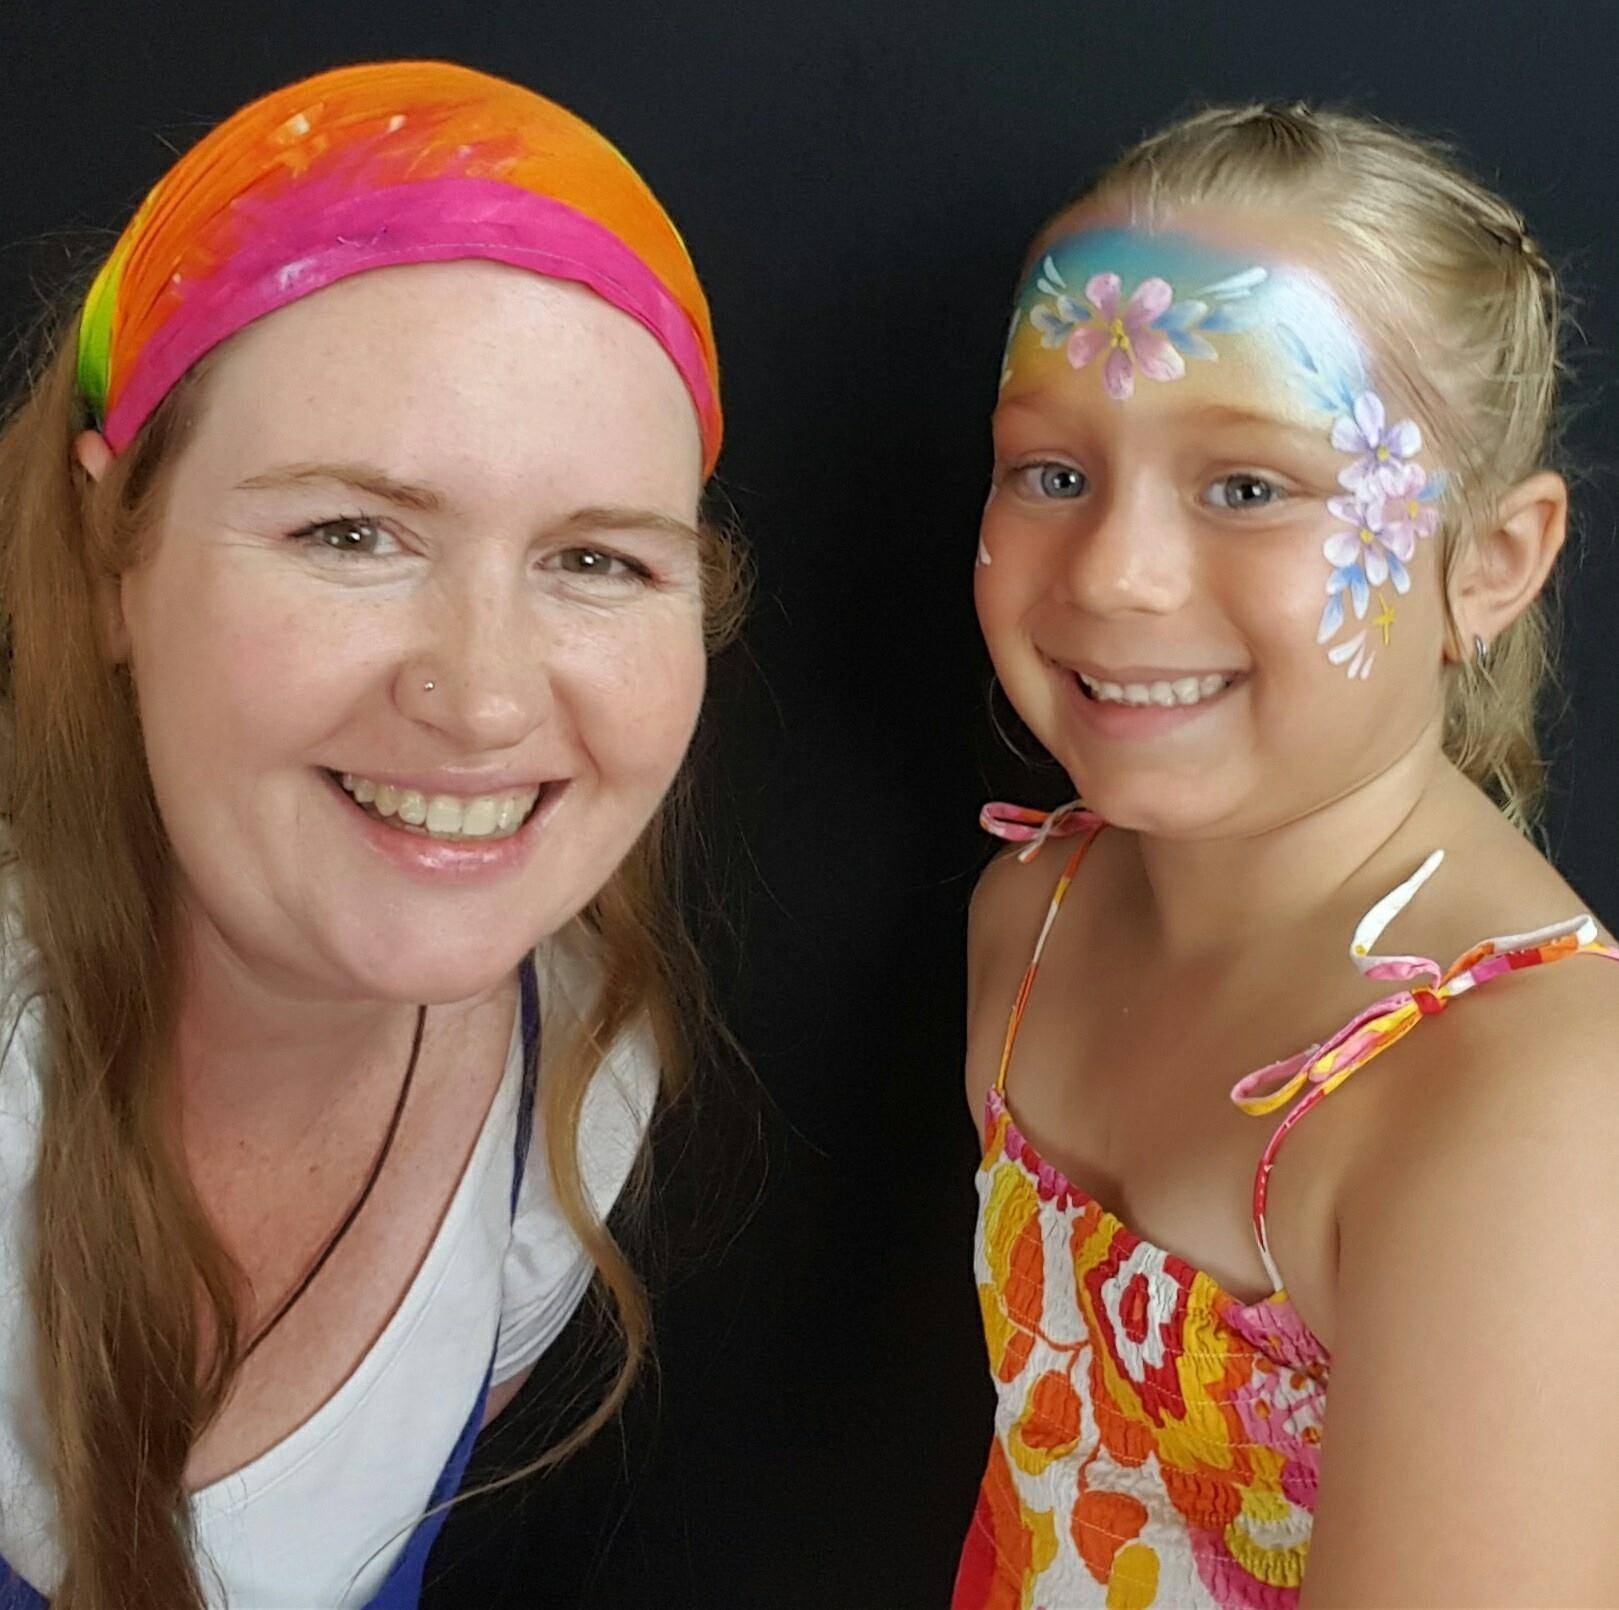 face-paint-shop-australia-kate-profile-pic.jpg